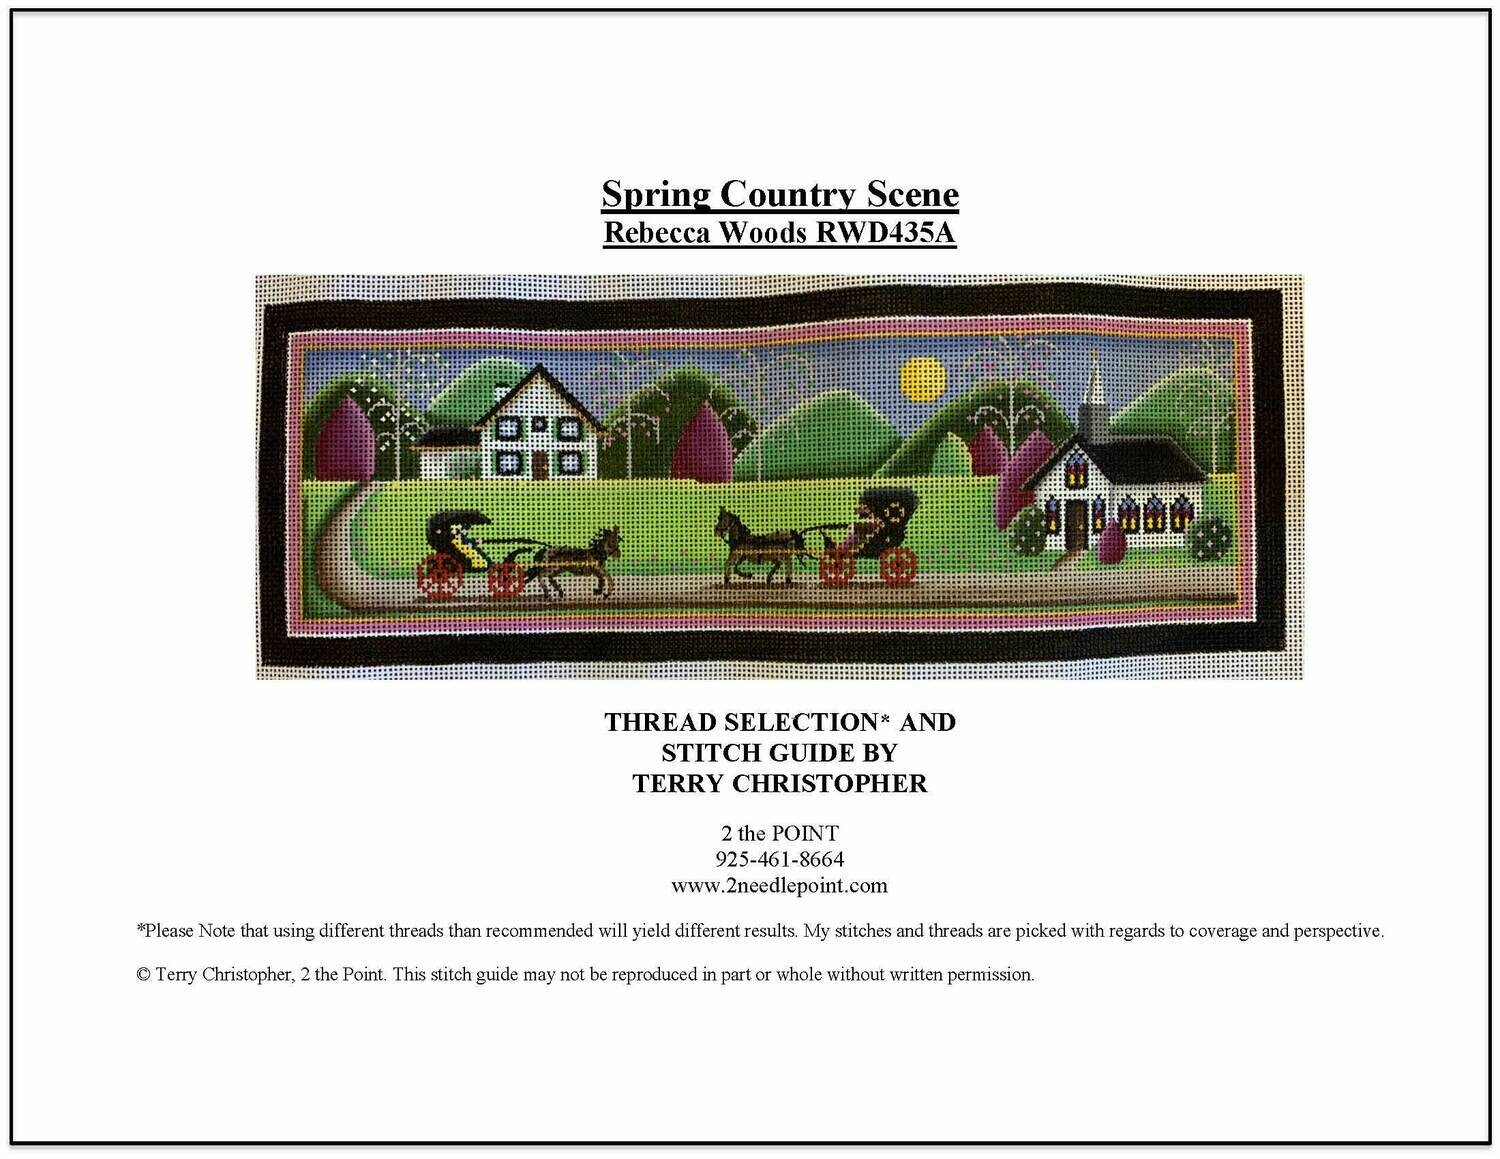 Rebecca Woods, Spring Country Scene RWD435A